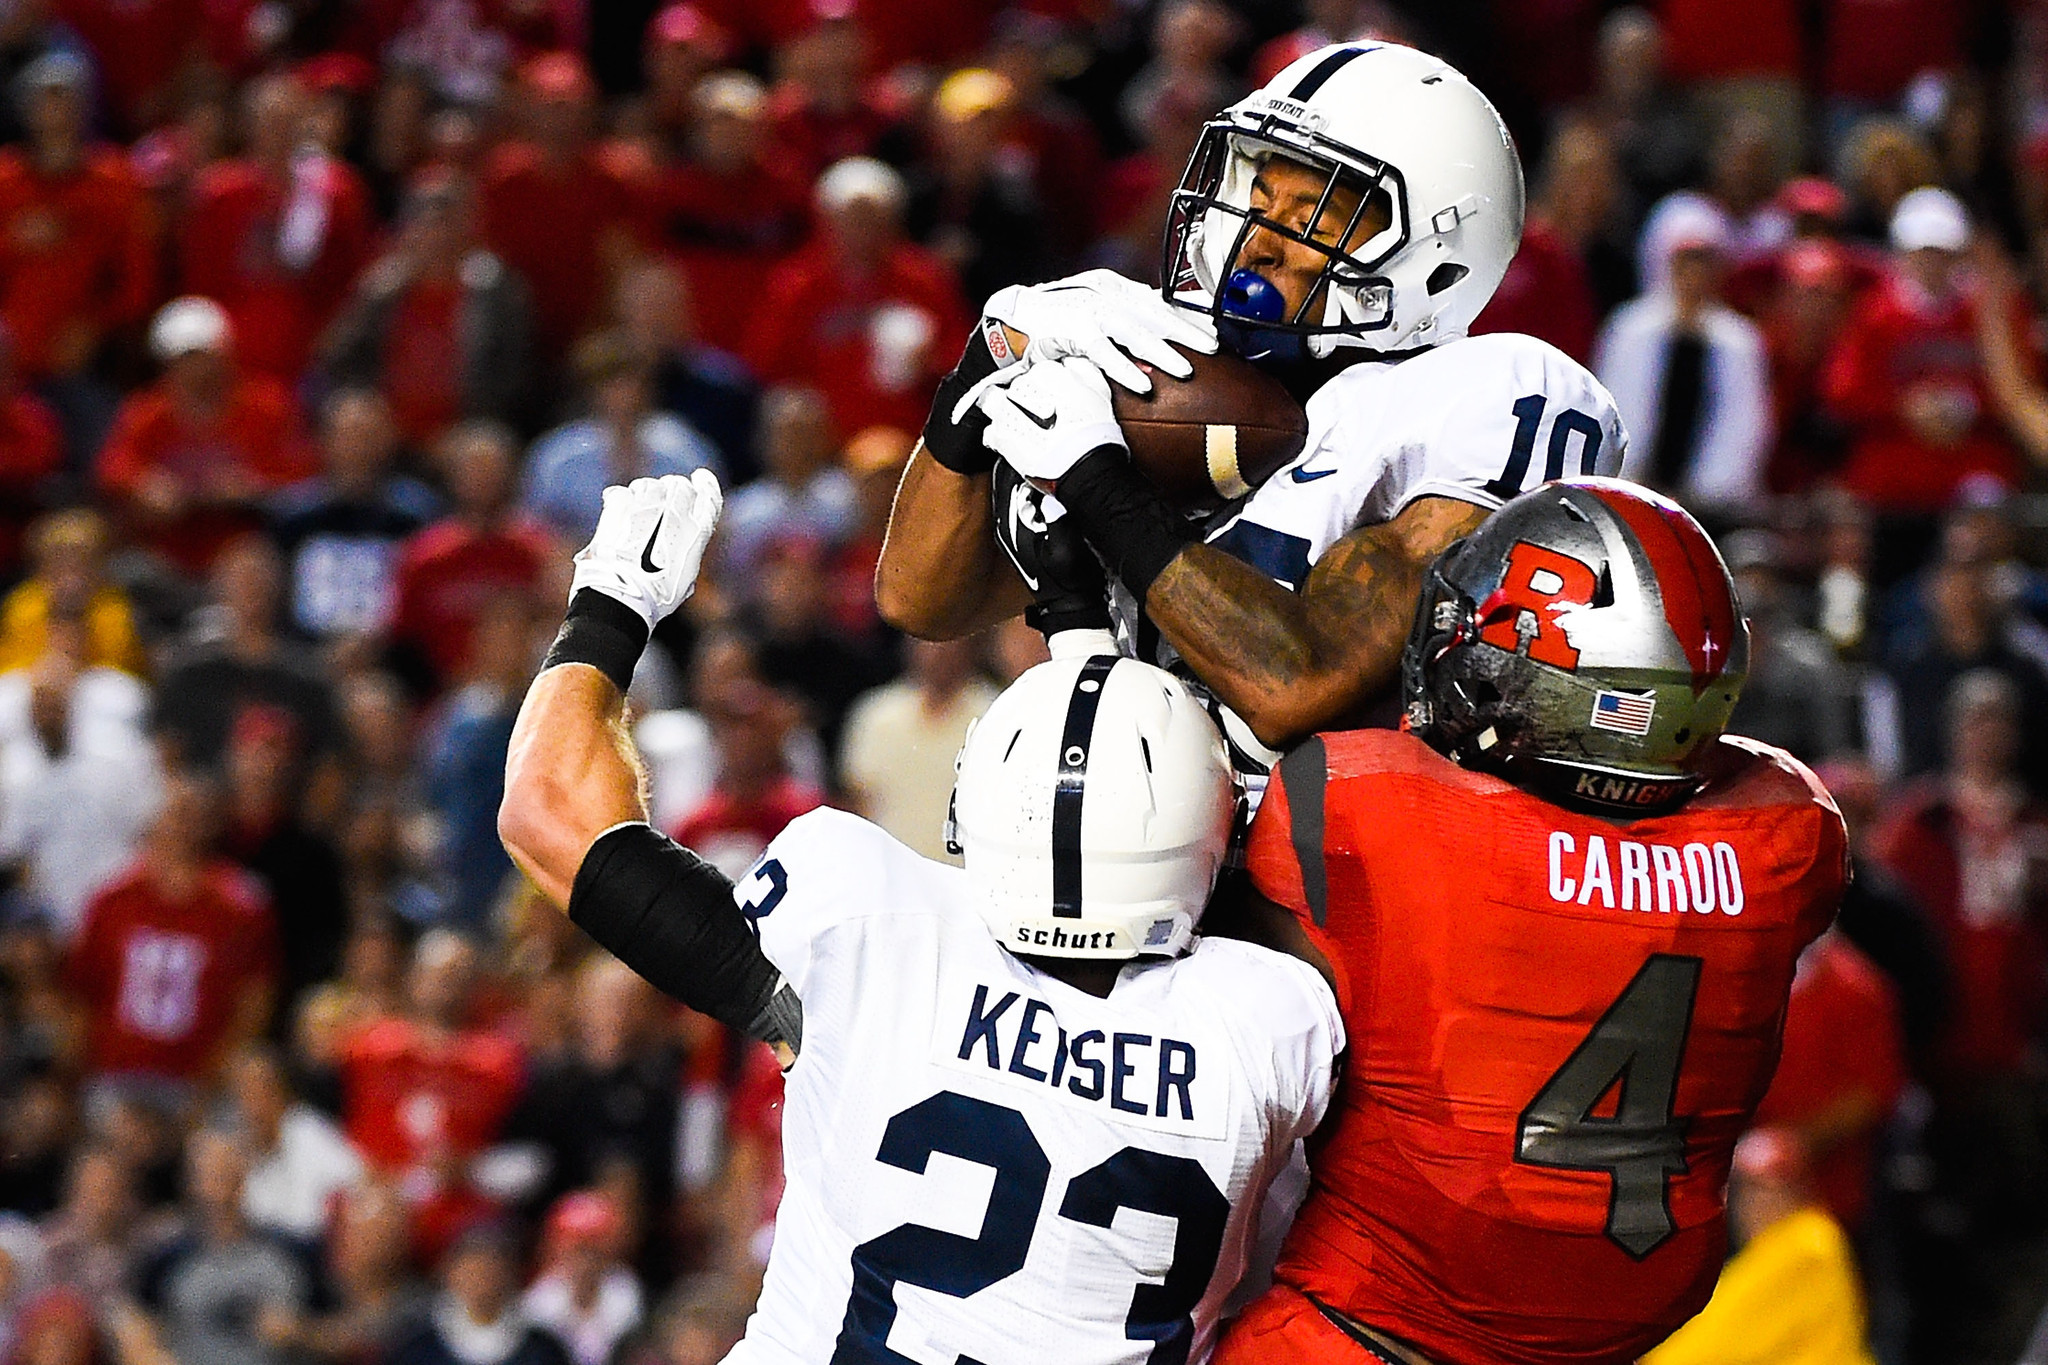 Penn State's Trevor Williams intercepts a pass in the third quarter against Rutgers on Saturday.